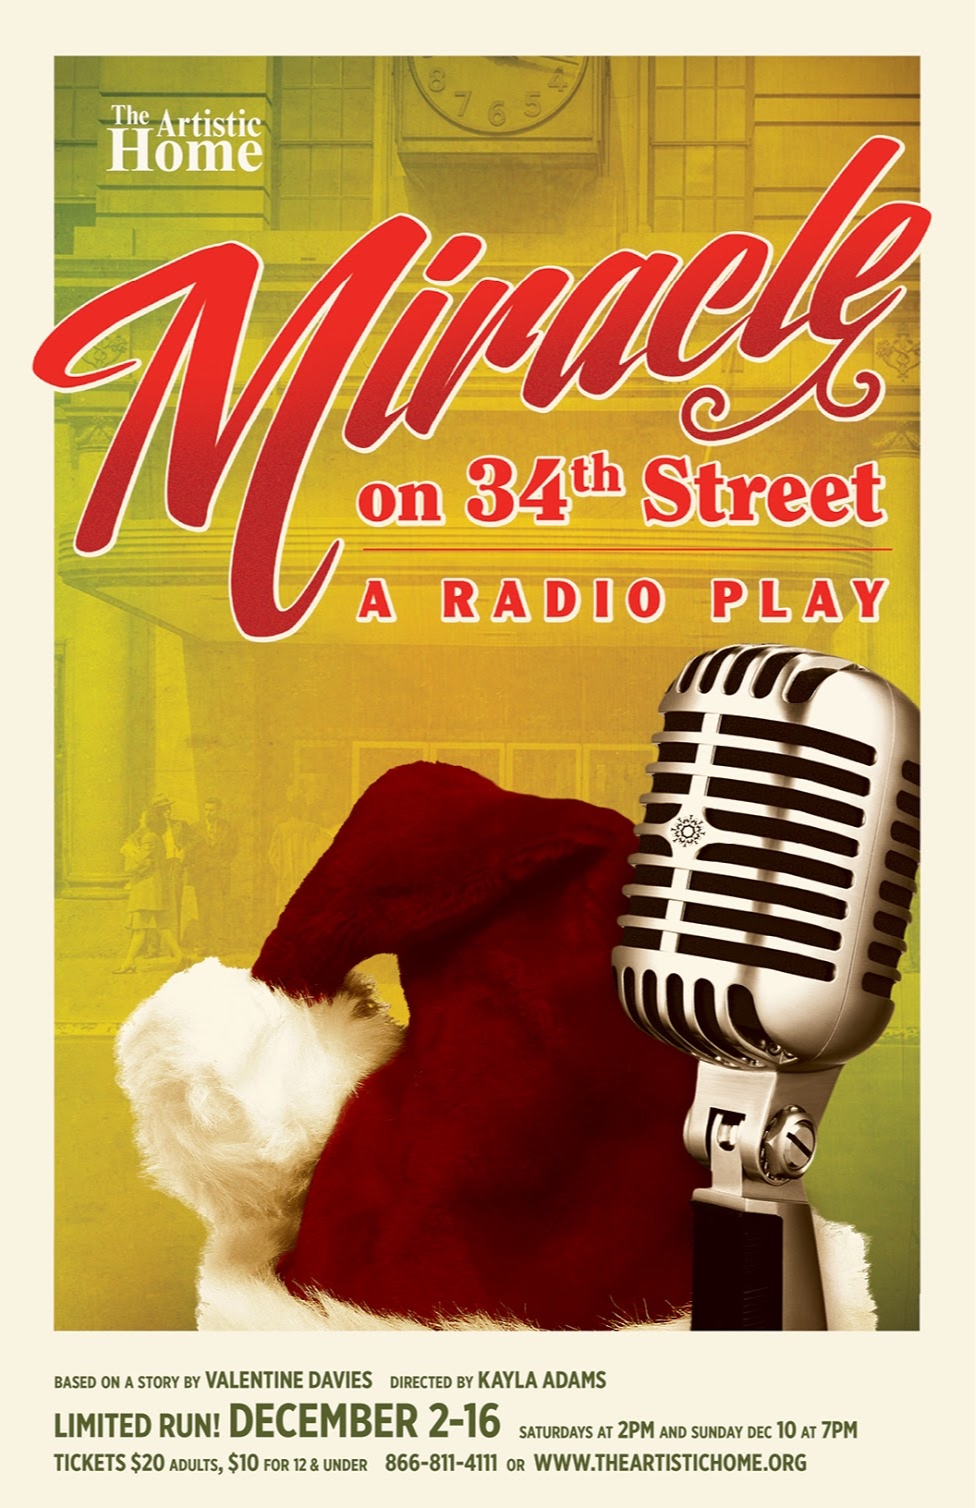 Miracle on 34th Street: A Radio Play - This play is perfect for families looking for a fun outing that captures the spirit of the season. Full of laughs, holiday magic and music, Miracle on 34th Street: A Radio Play tells how the department store Santa who comes in to Macy's as an emergency substitute challenges the mother and daughter's refusal to believe when he claims to be the one and only Kris Kringle. Can he prove to them and the world that Santa is real while making one little girl's dreams come true?